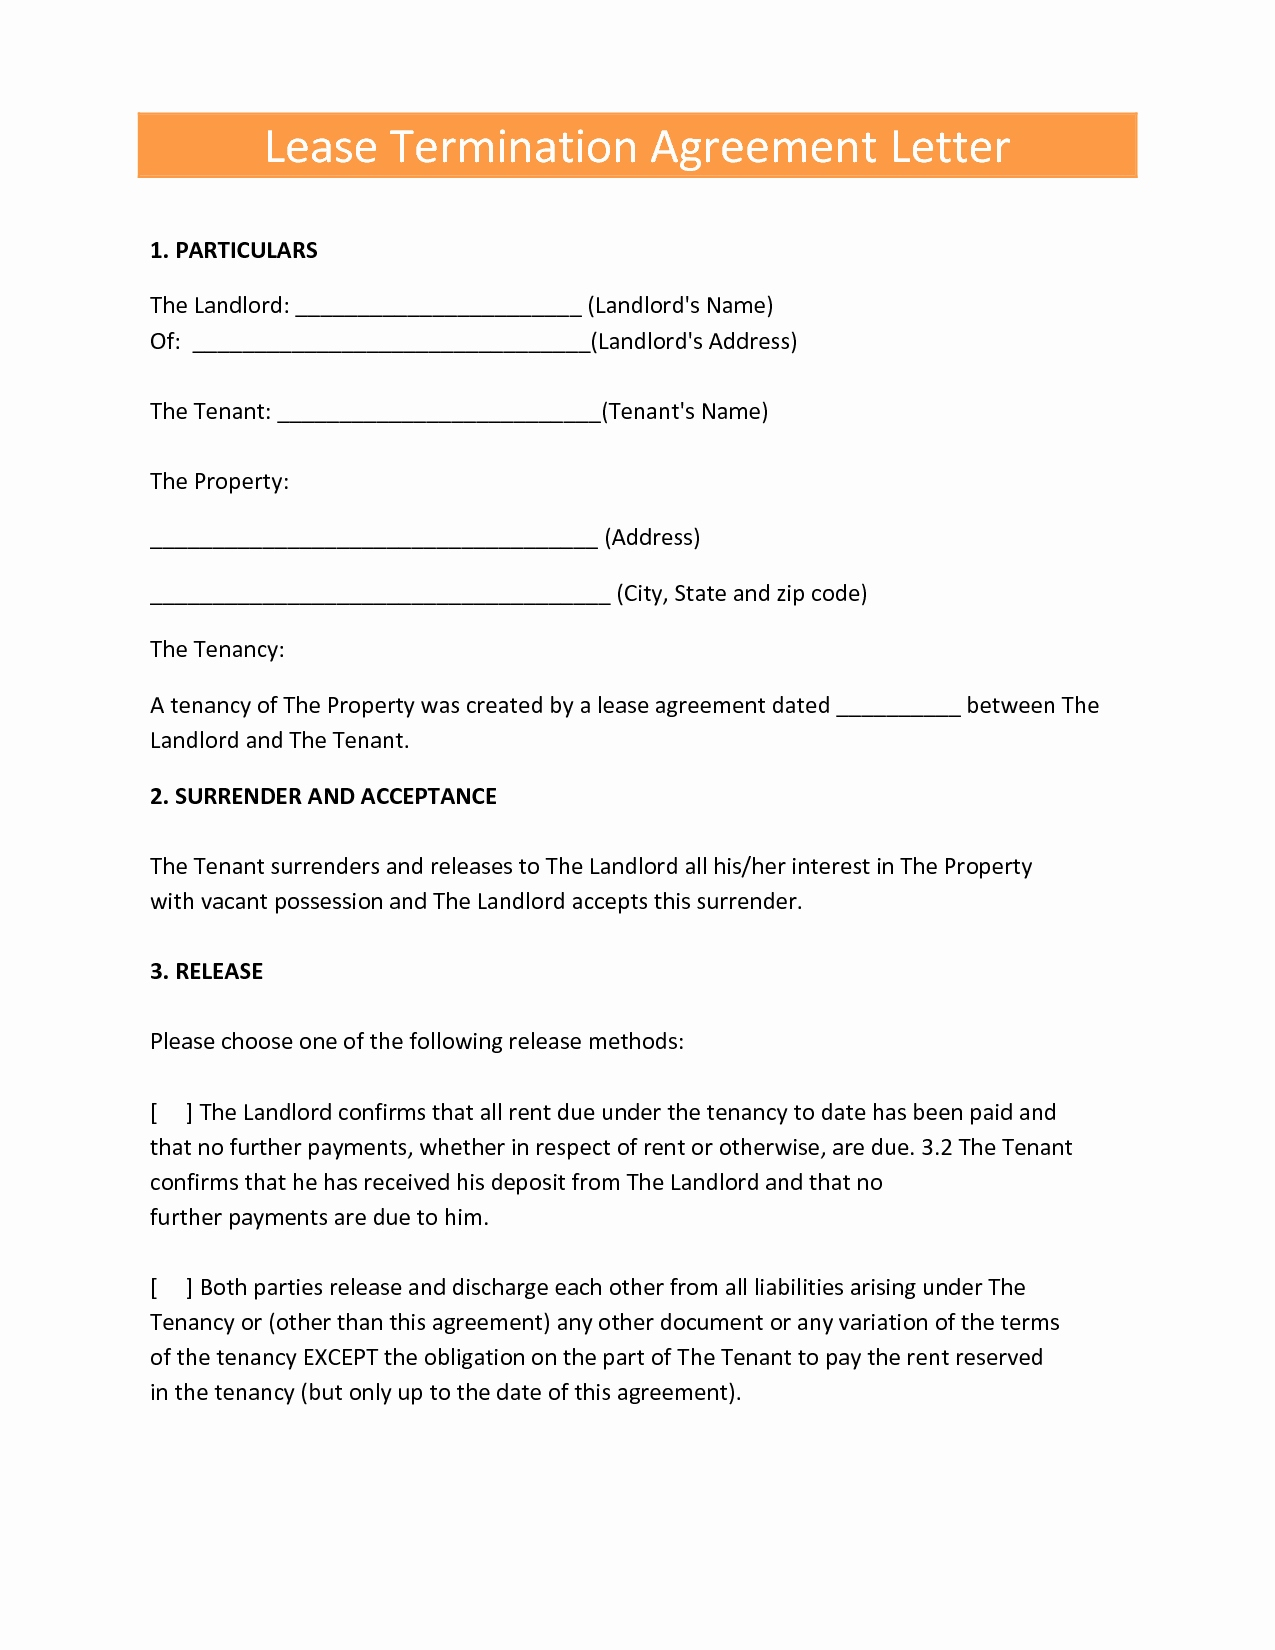 Early Lease Termination Letter to Landlord Template - 10 New Early Lease Termination Agreement